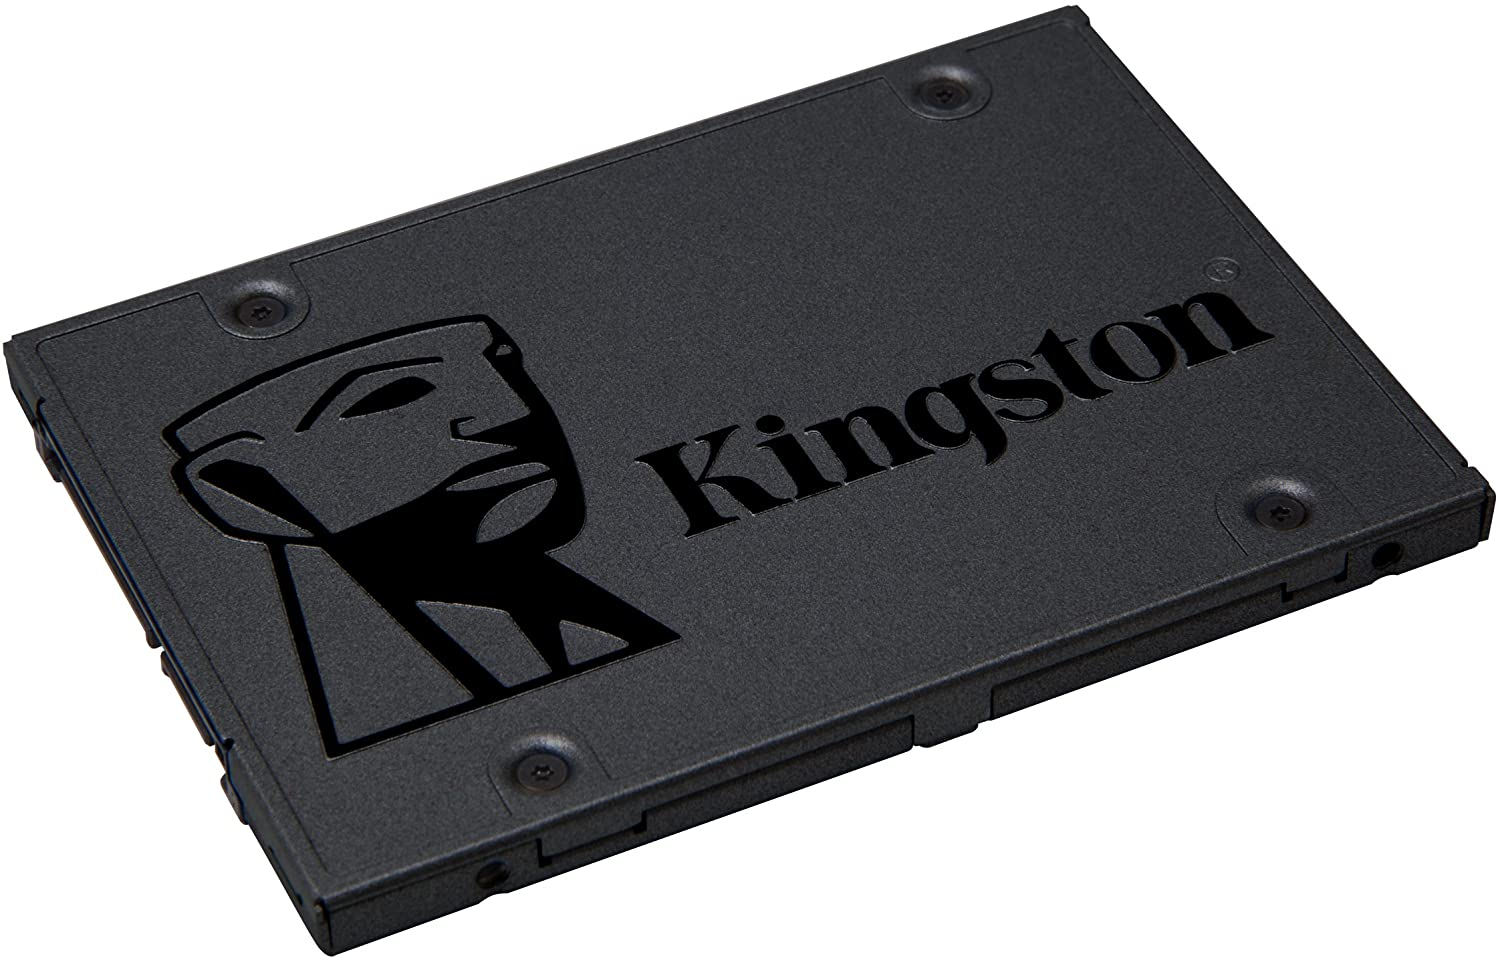 Disco Duro Solido SSD KINGSTON 960Gb 2.5 para Laptop y Pc